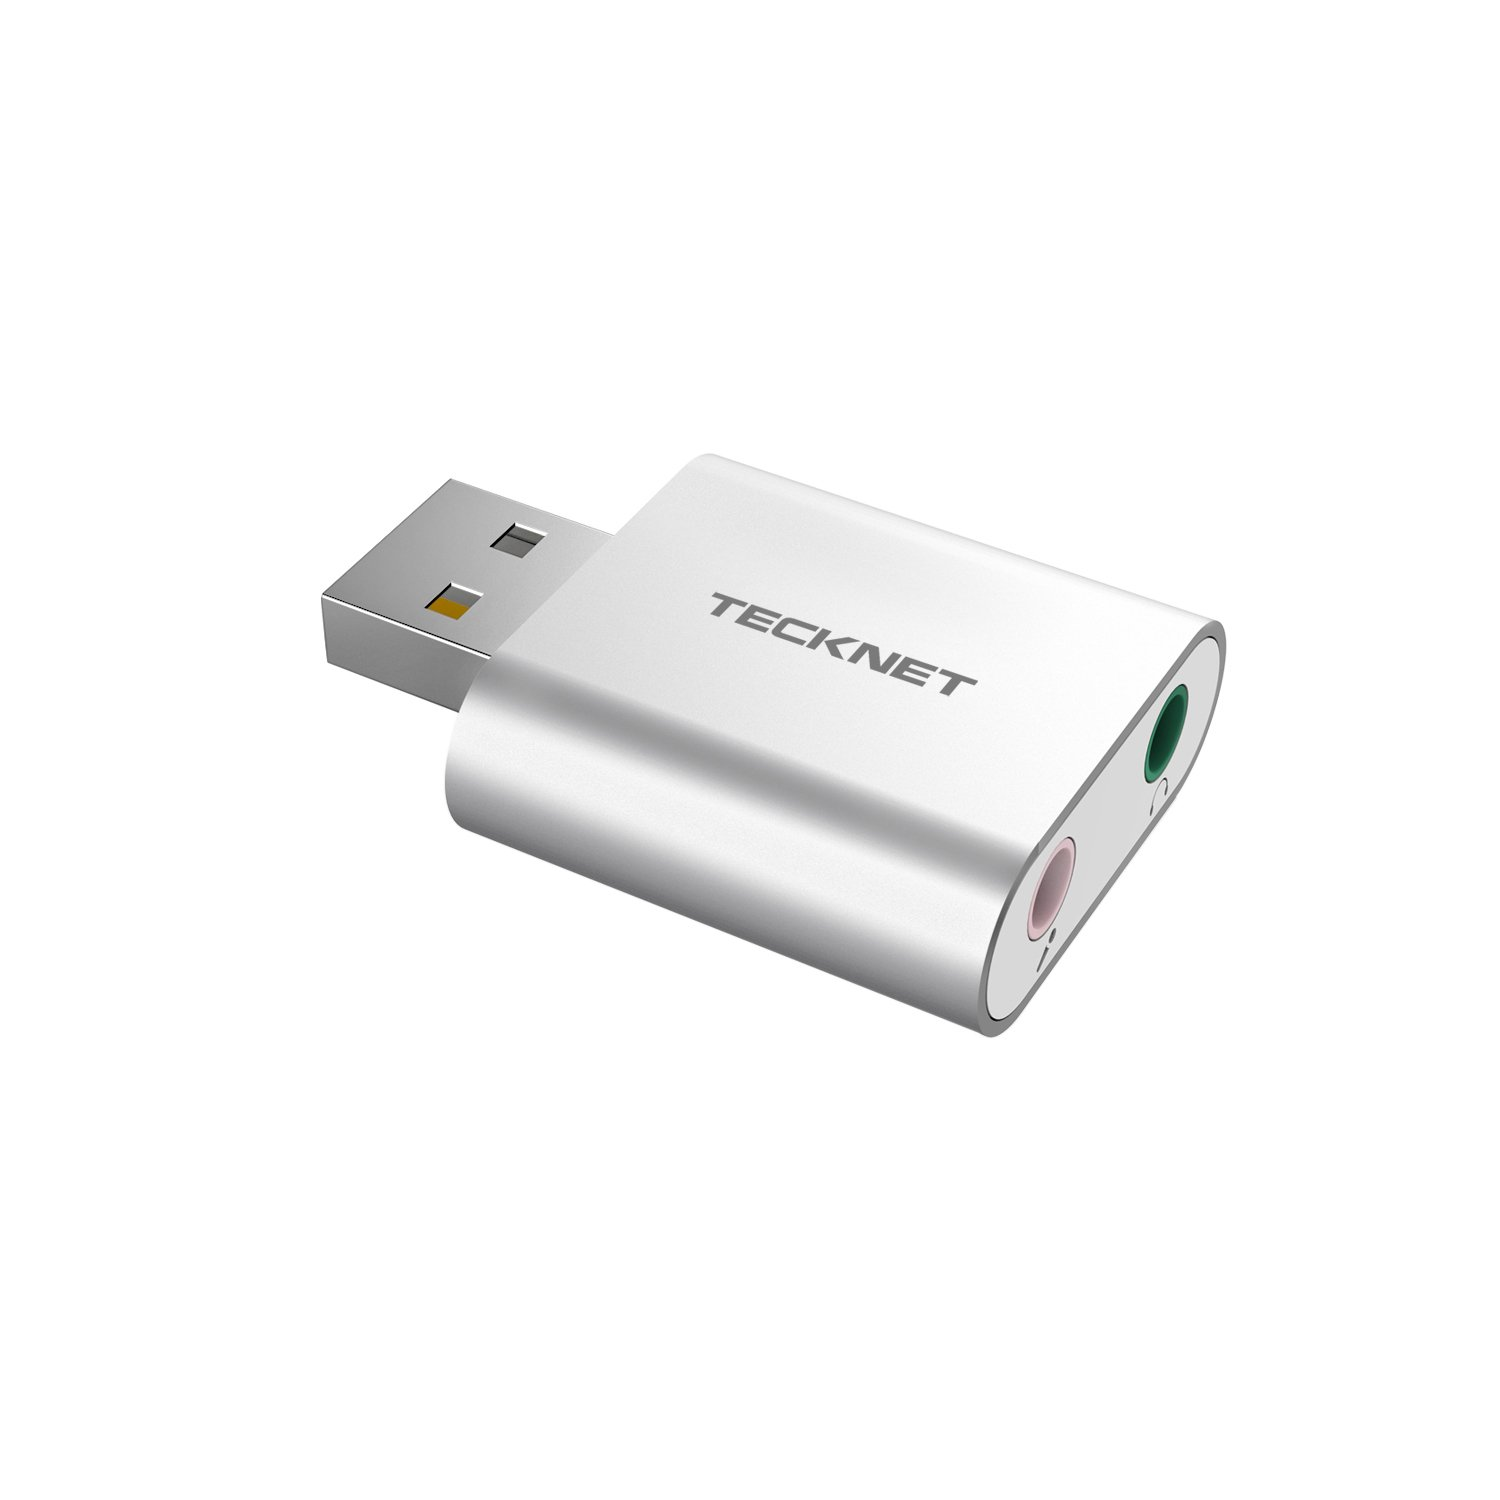 TECKNET Aluminum USB External Stereo Sound Adapter for Windows and Mac, Plug and Play, No Drivers Needed